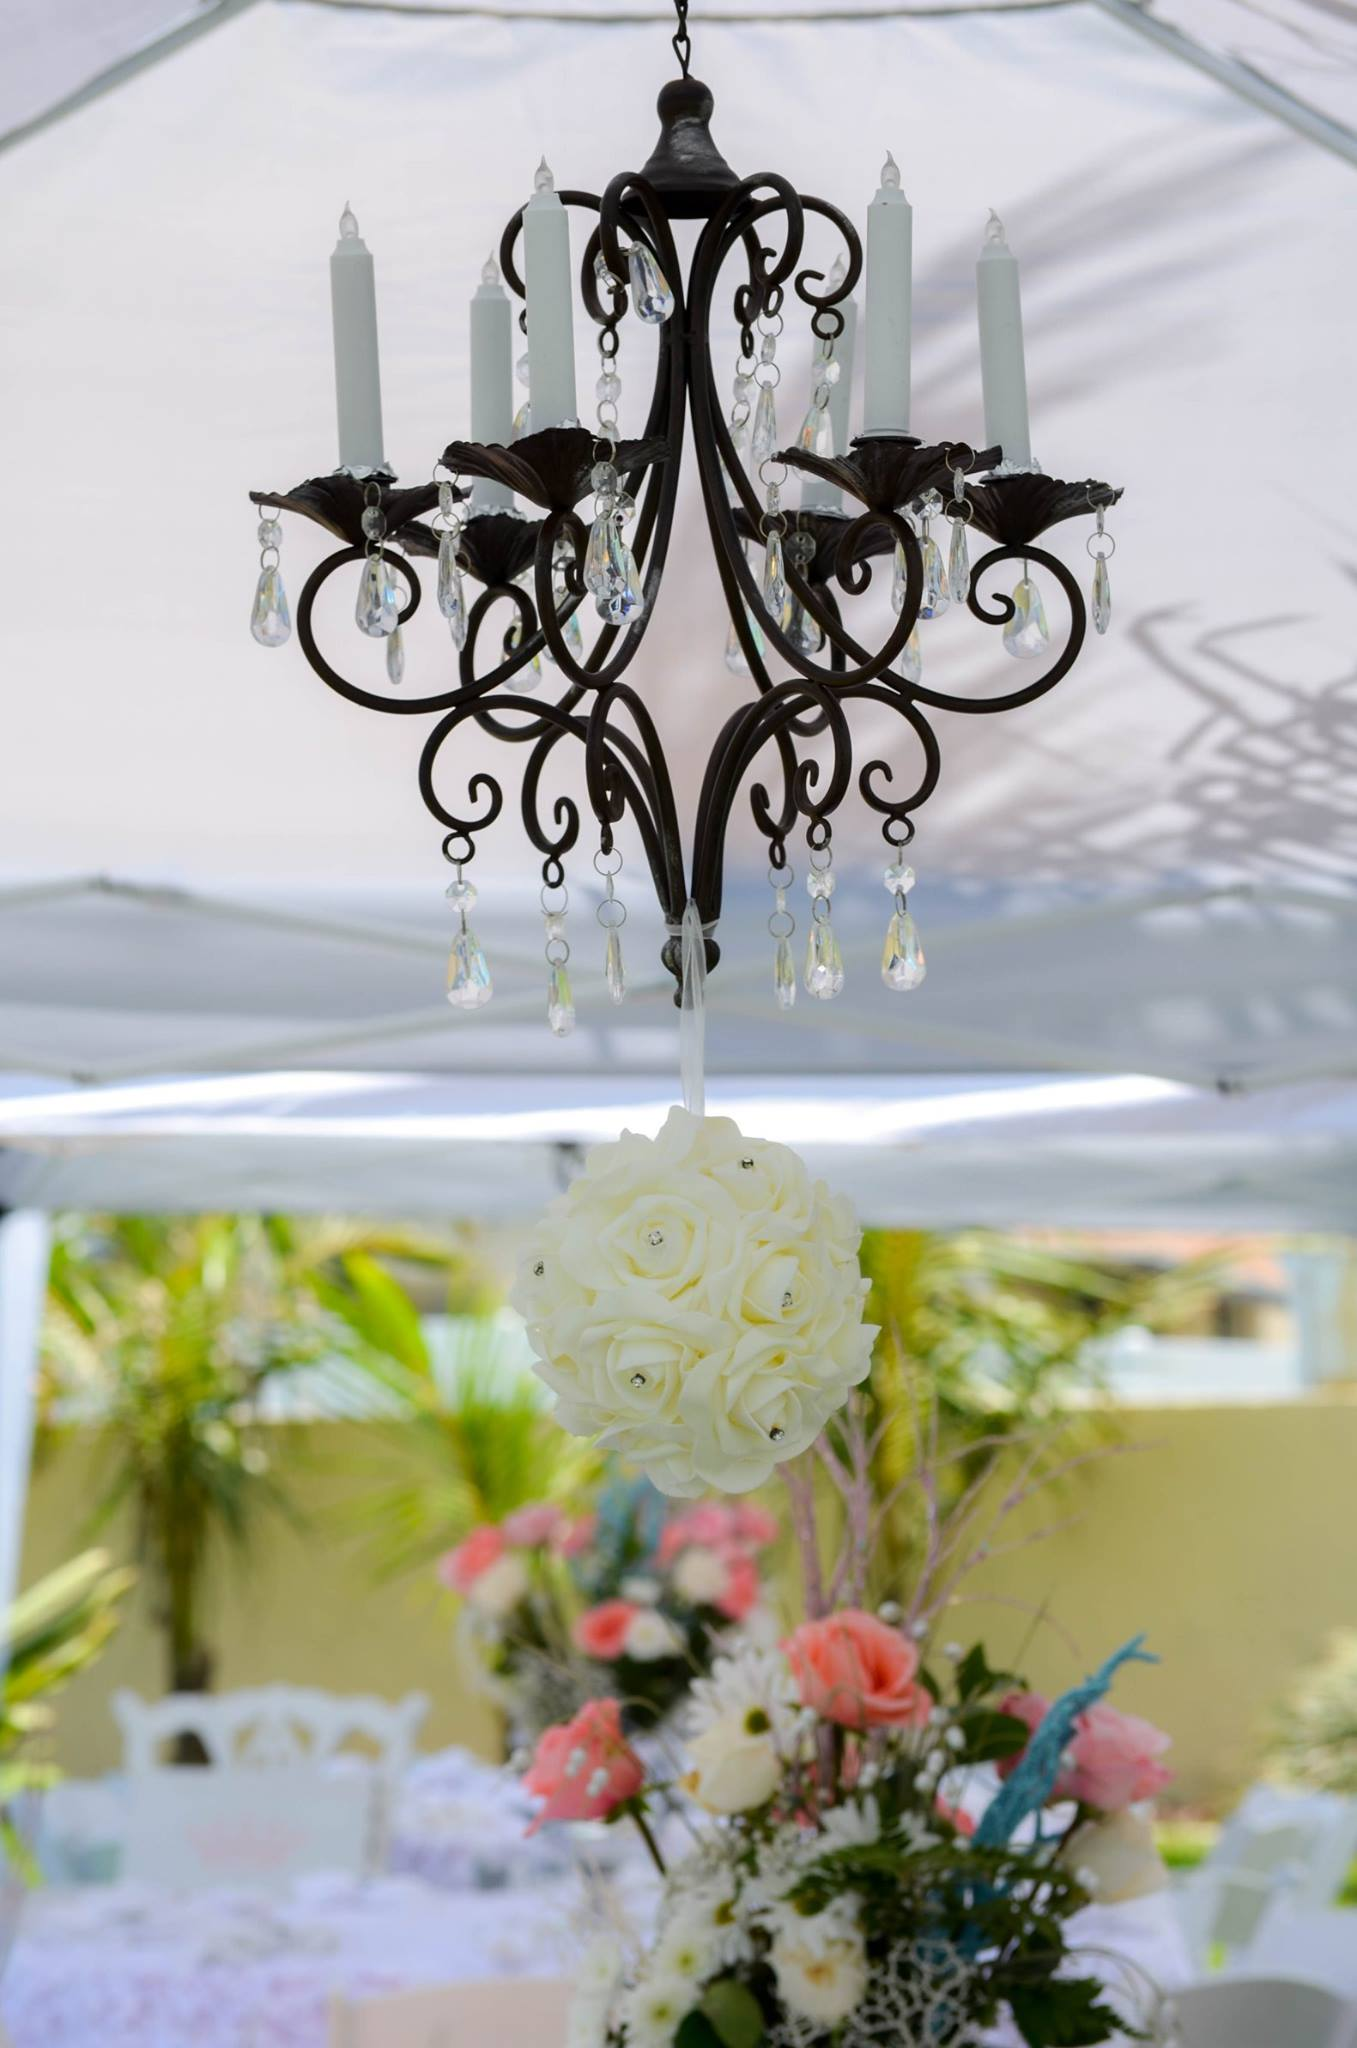 abfab_beach_chandelier2